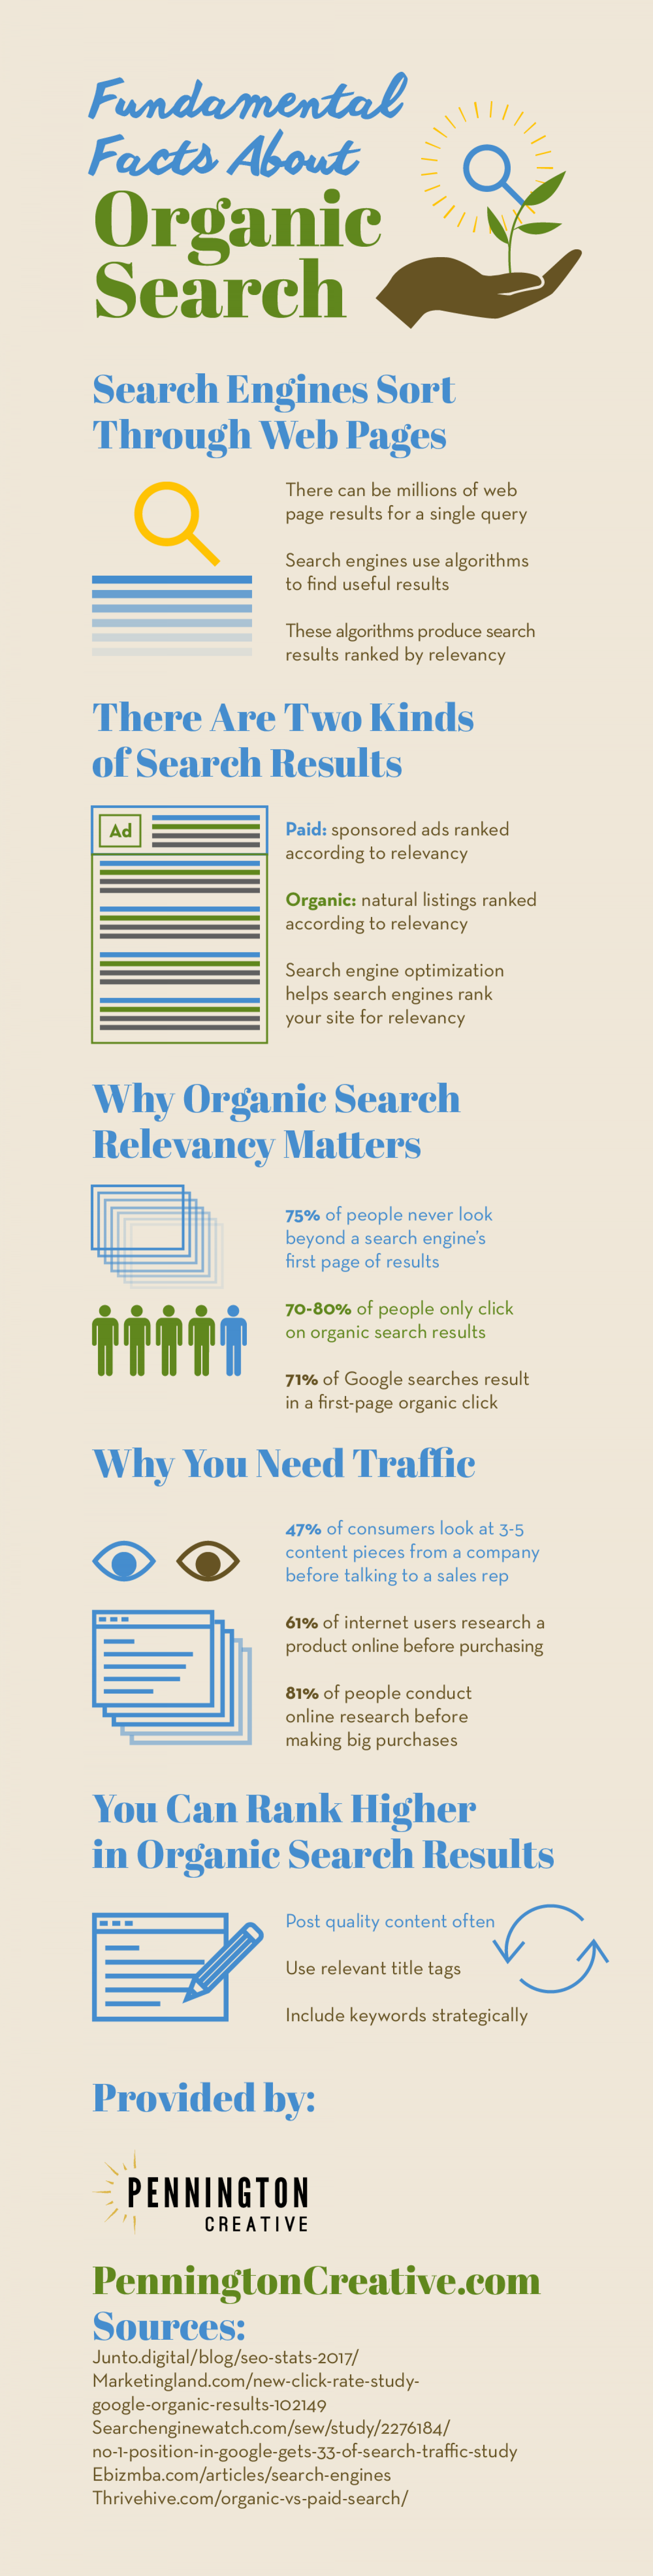 Fundamental Facts About Organic Search Infographic